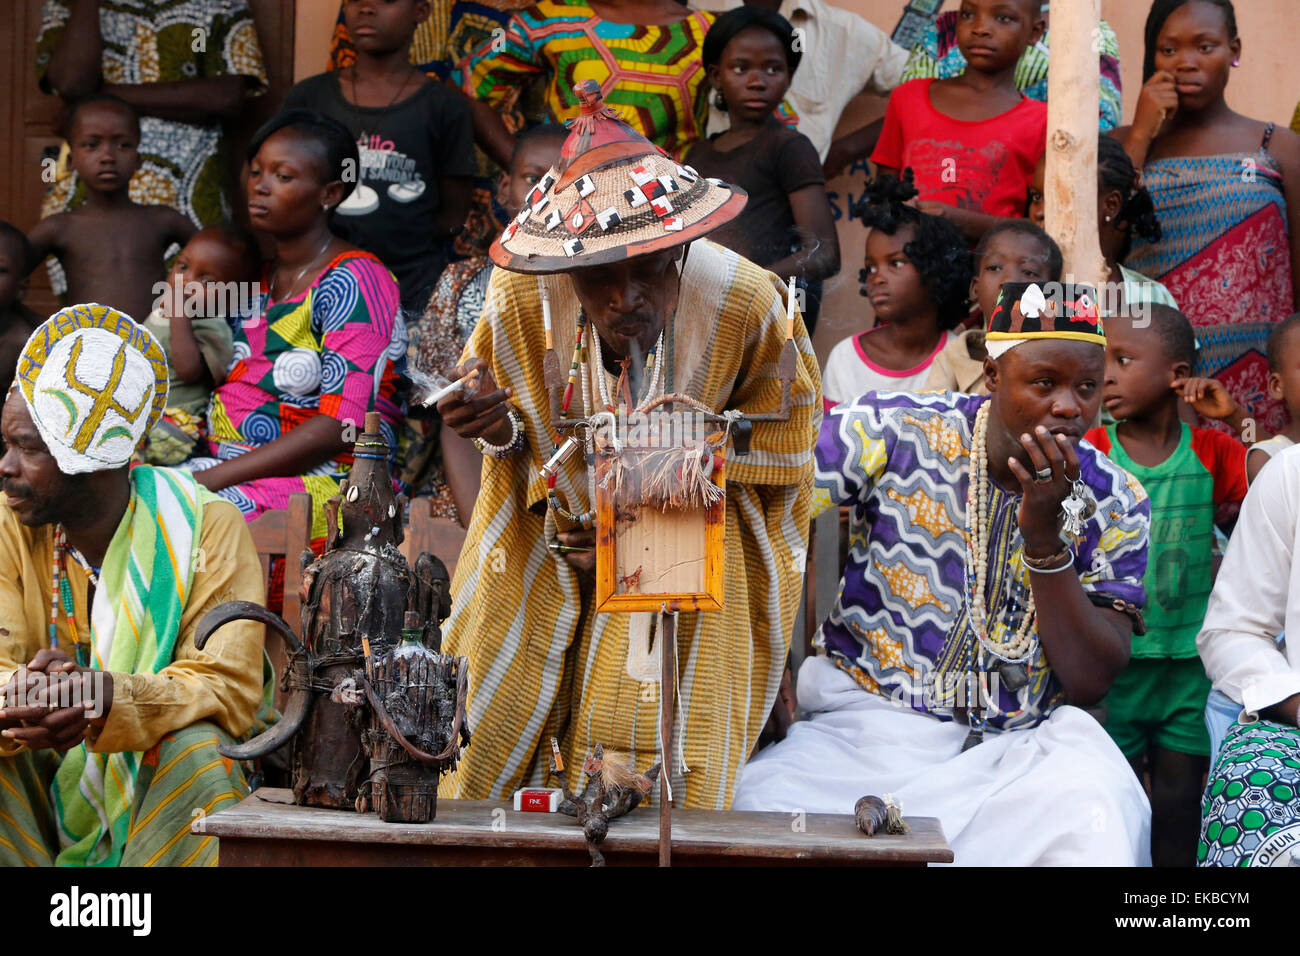 Voodoo Priest Stock Photos & Voodoo Priest Stock Images - Alamy